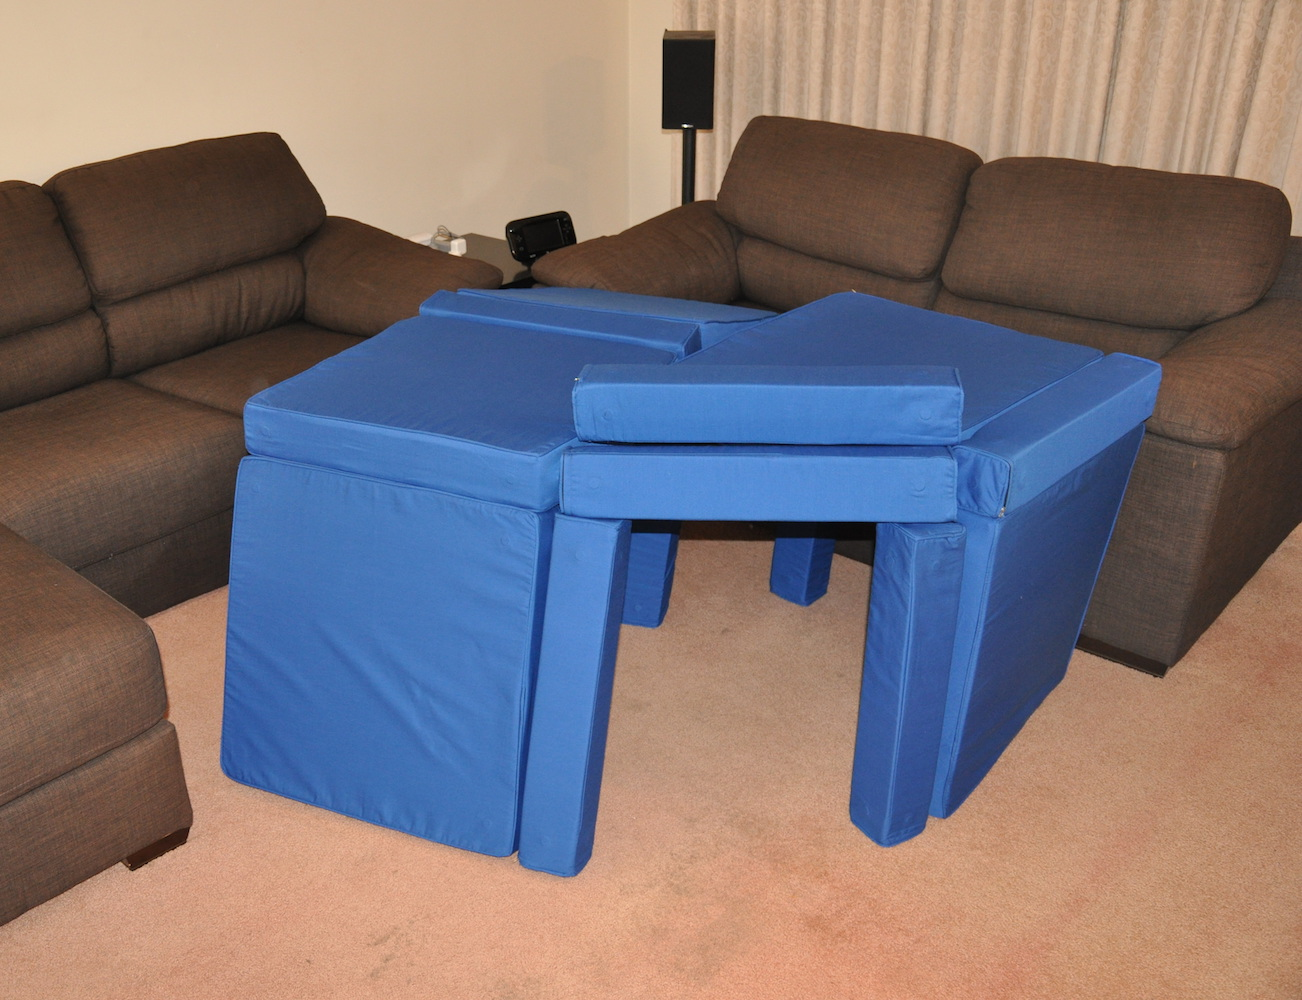 squishy-forts-pillow-fort-ottoman-04